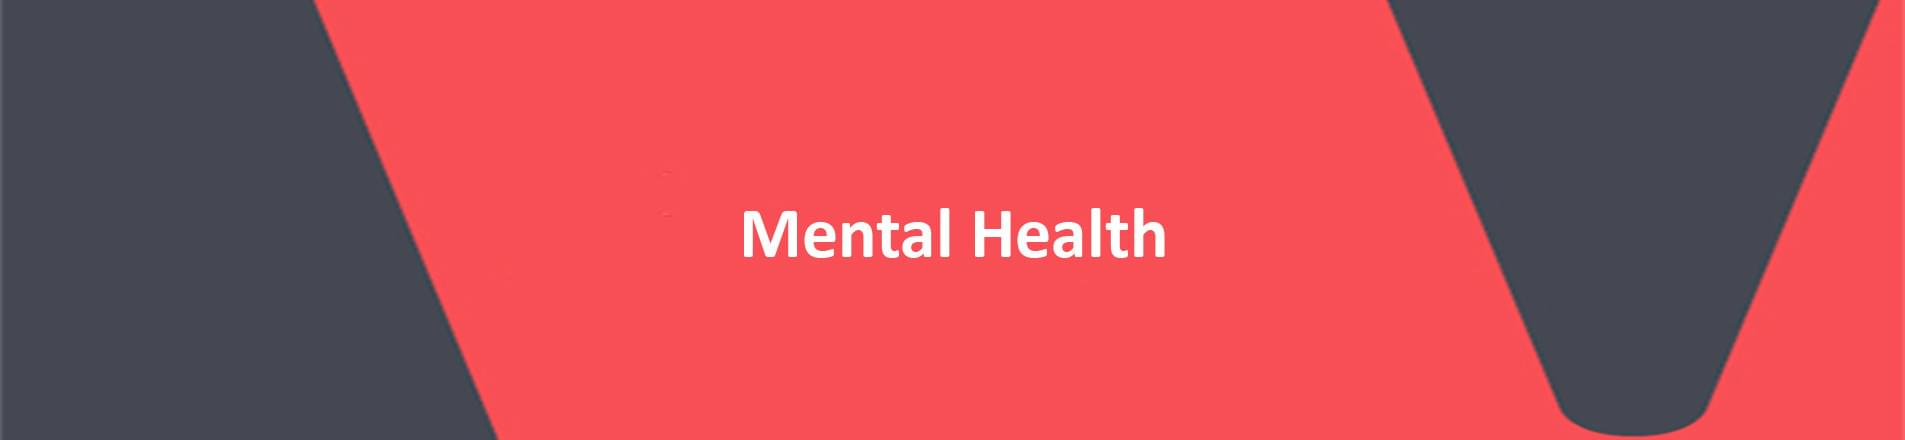 Image of the words mental health in white letters on a red background